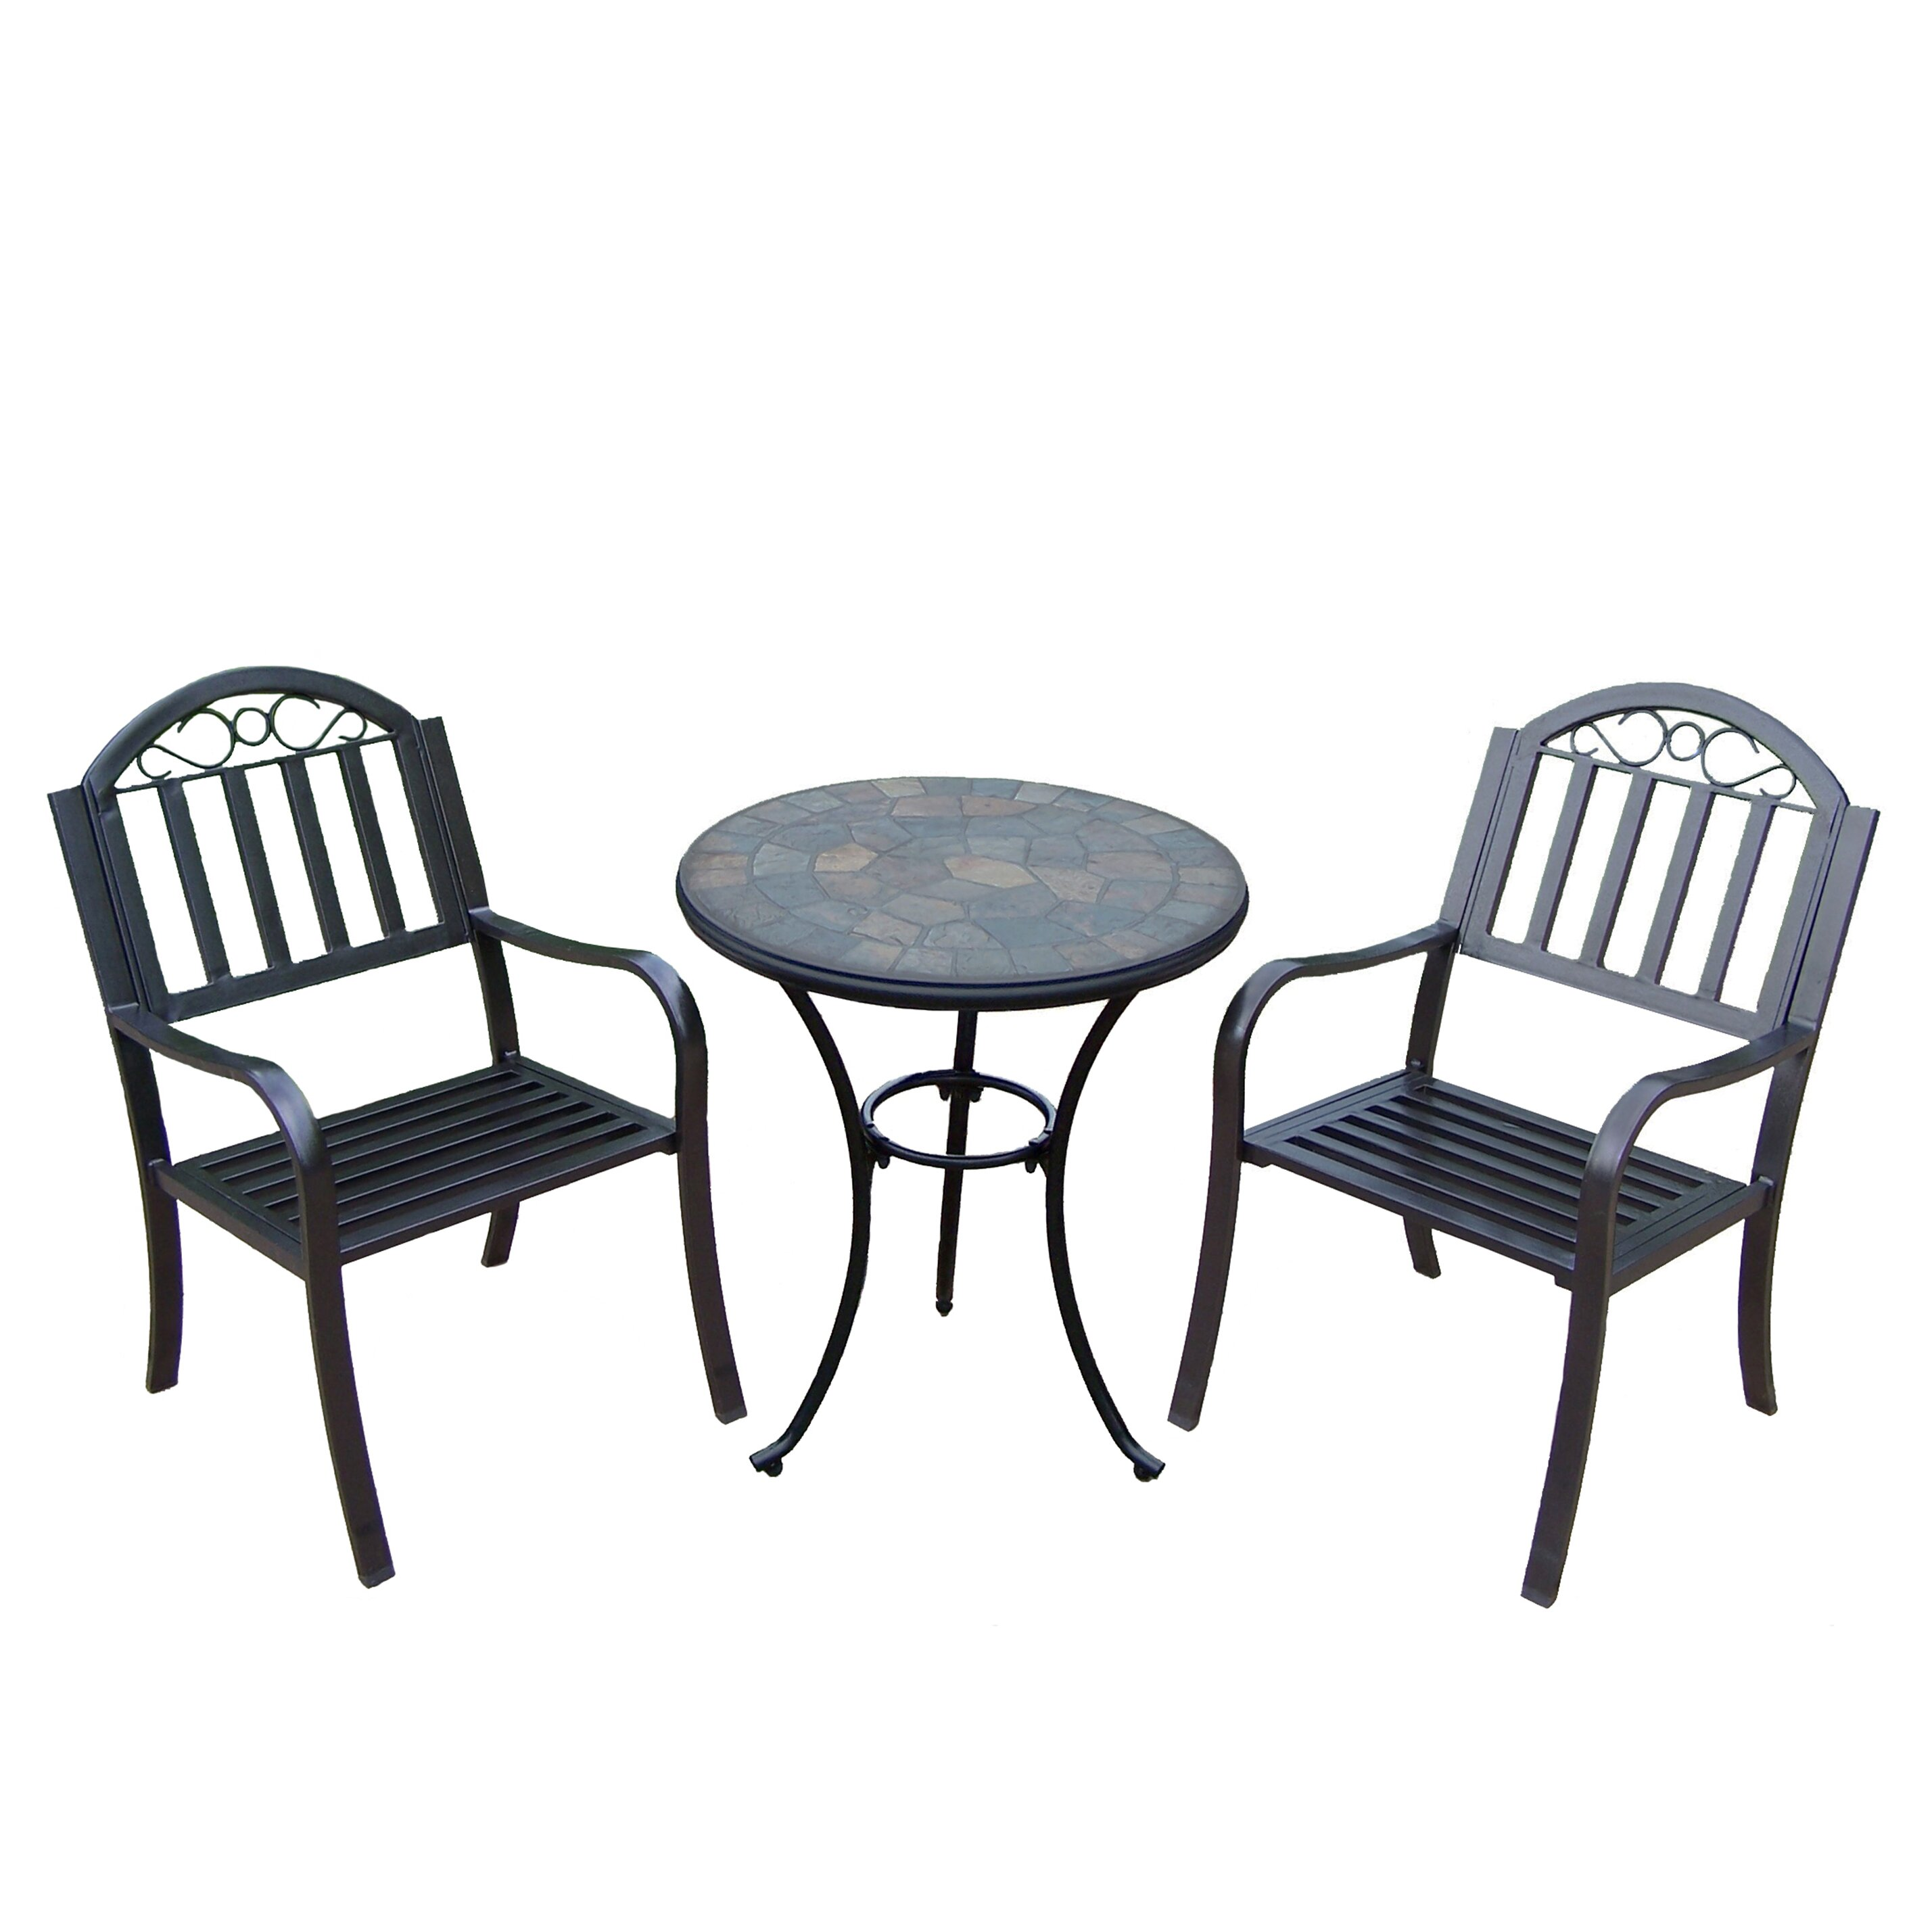 Outdoor Patio Furniture Rochester Ny: Oakland Living Stone Art Rochester 3 Piece Bistro Set